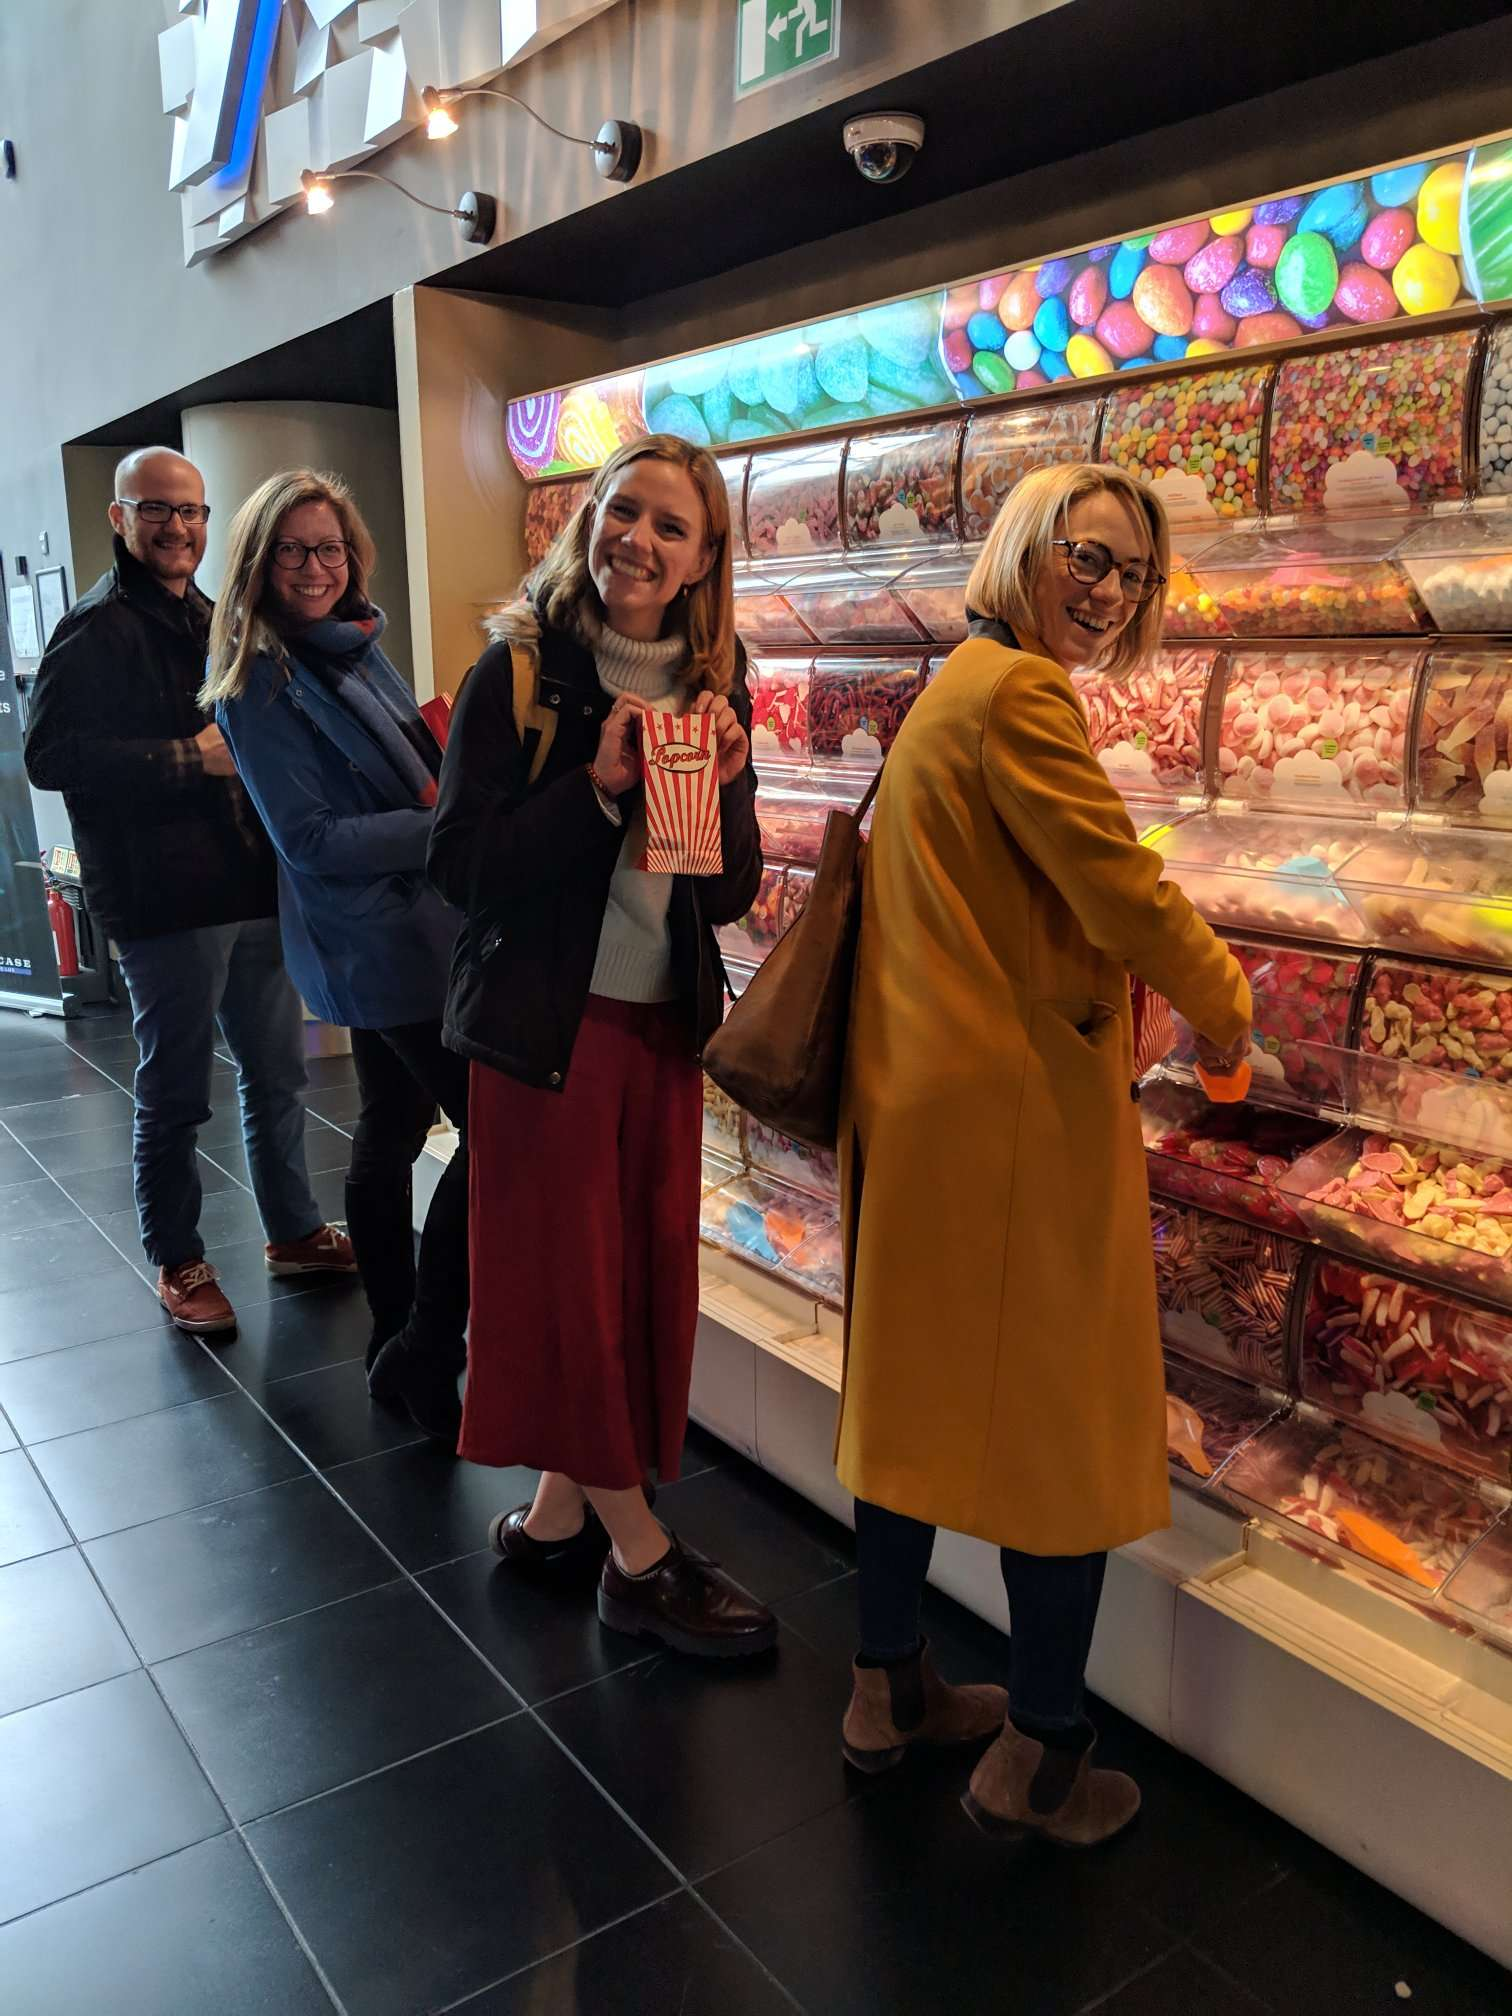 A trip to the cinema calls for pick-n-mix… From left: Jacob (MWC Intern), Sara (Policy Projects Manager), Noa (Communications Officer), and Katrina (Director). 📷: Harriet (Project Manager).